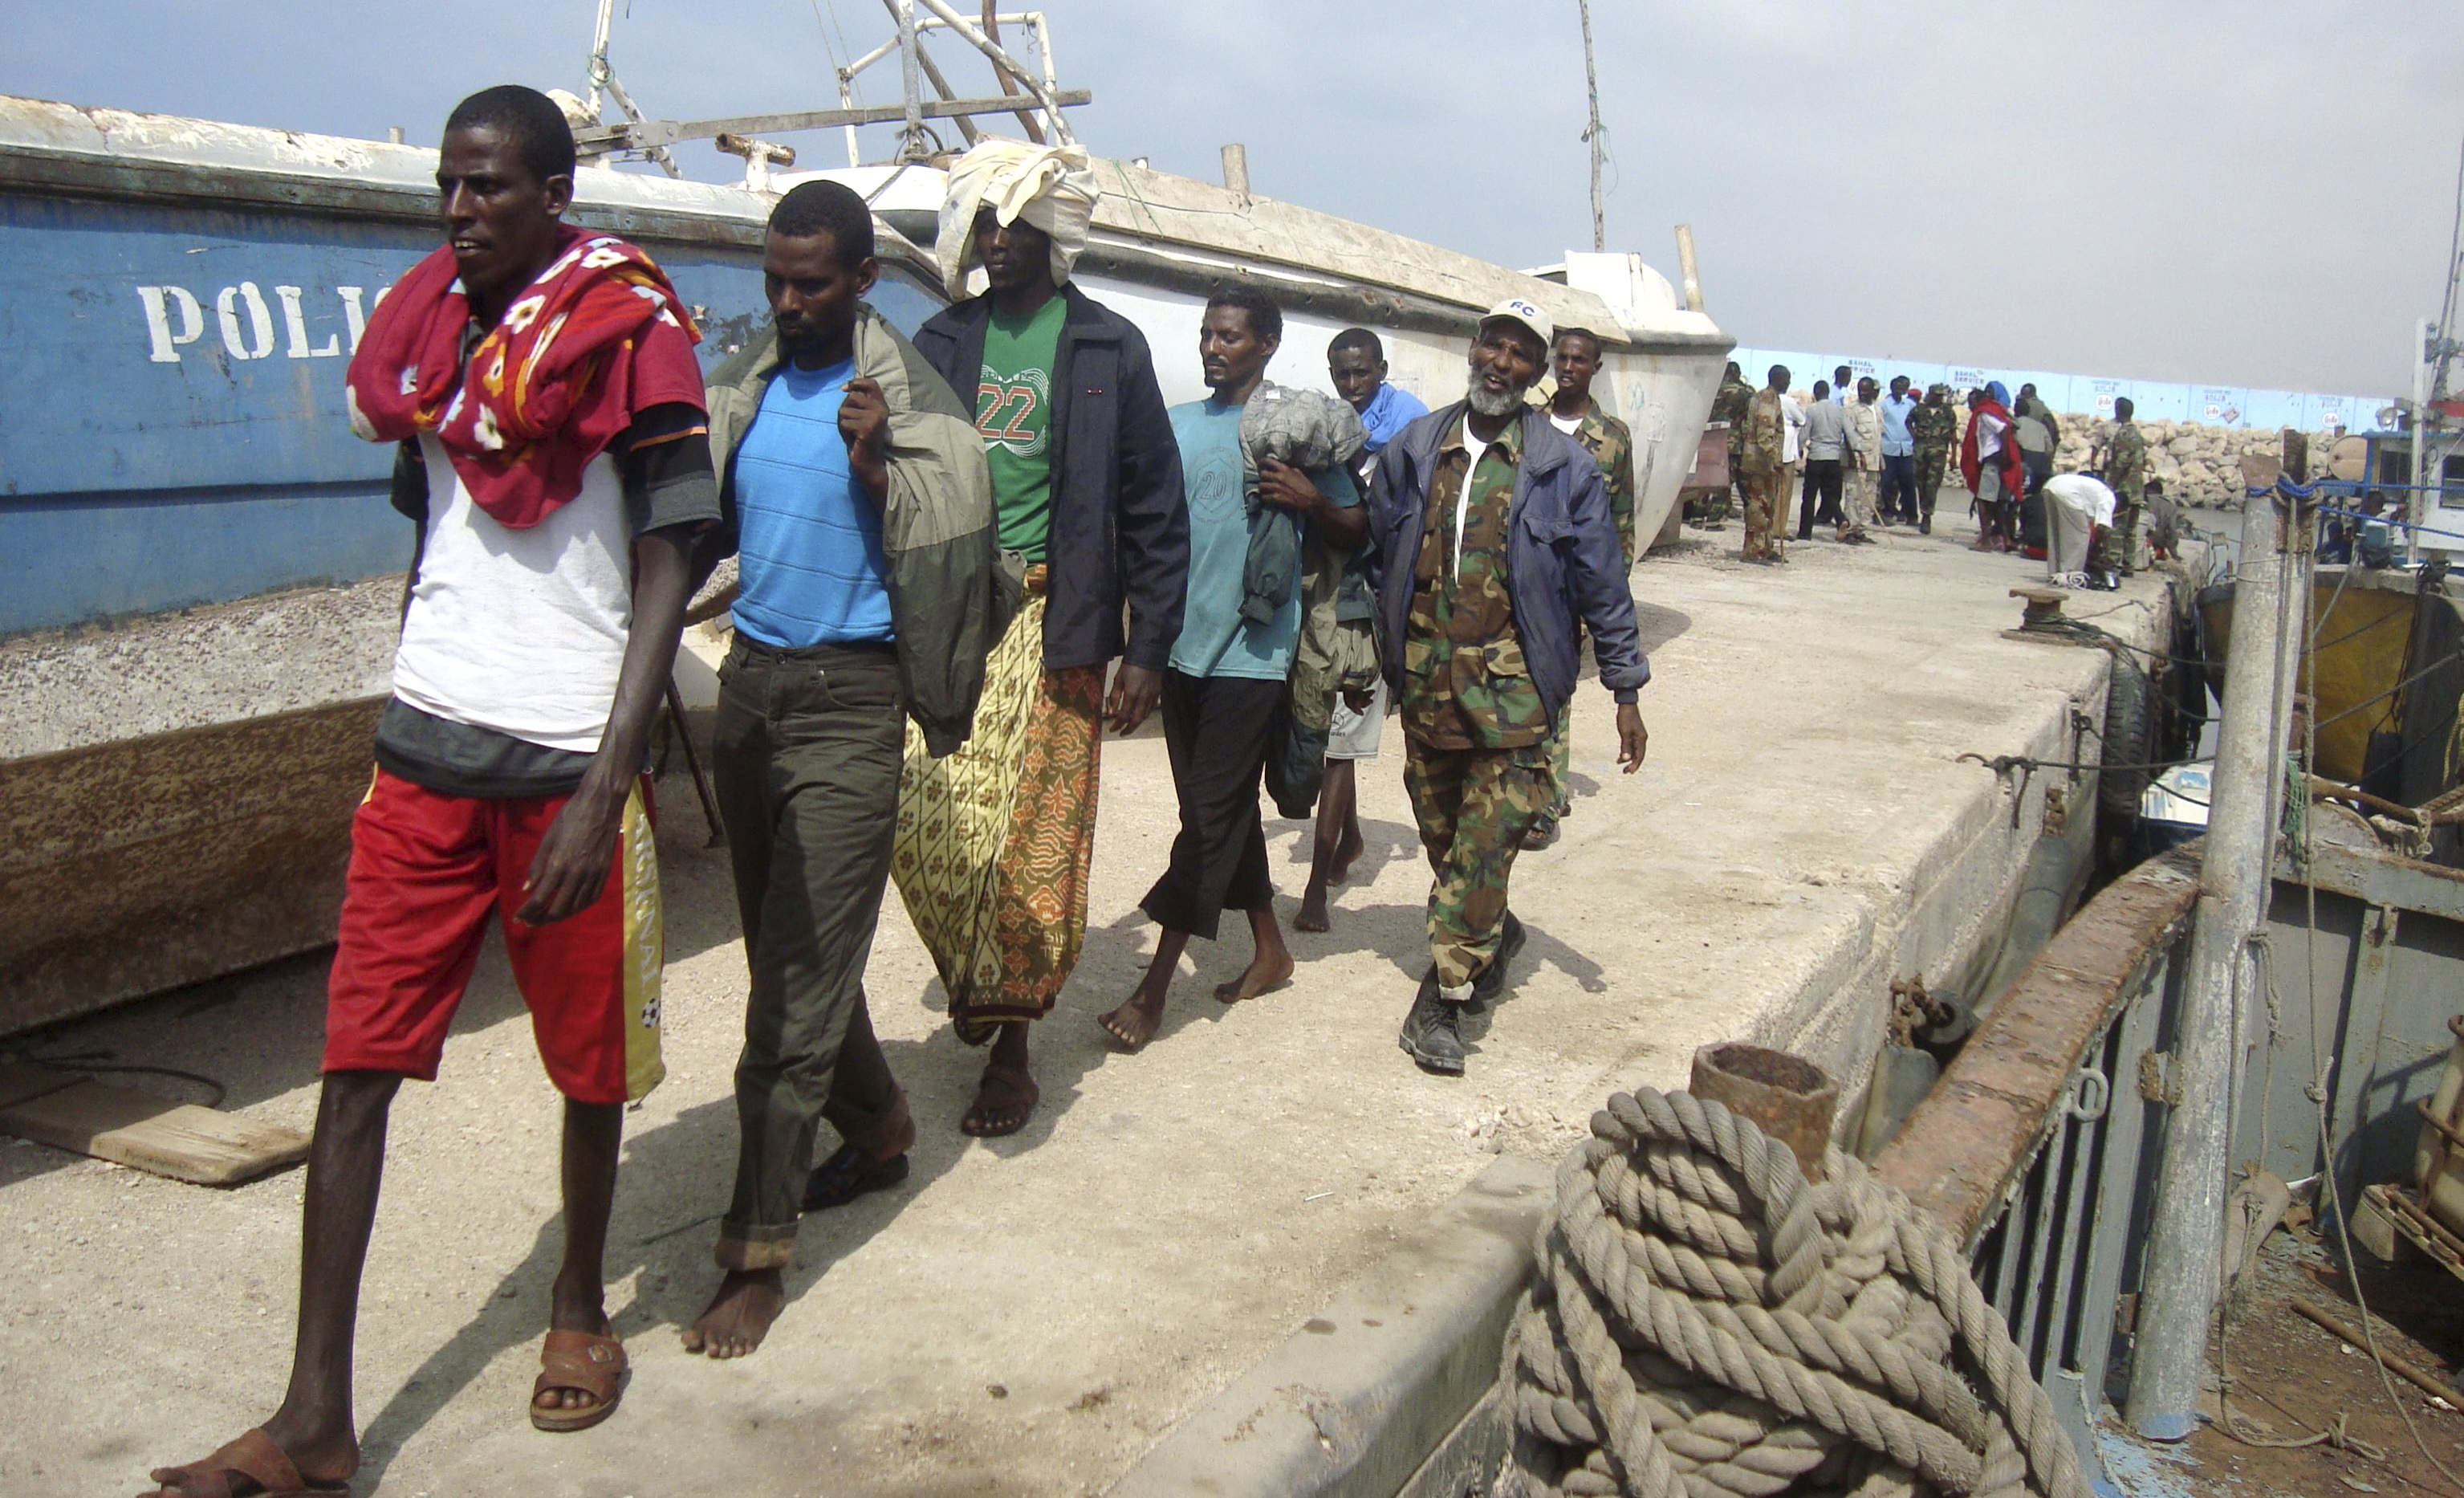 119 Somali pirates plead guilty; 50 of them face death sentence